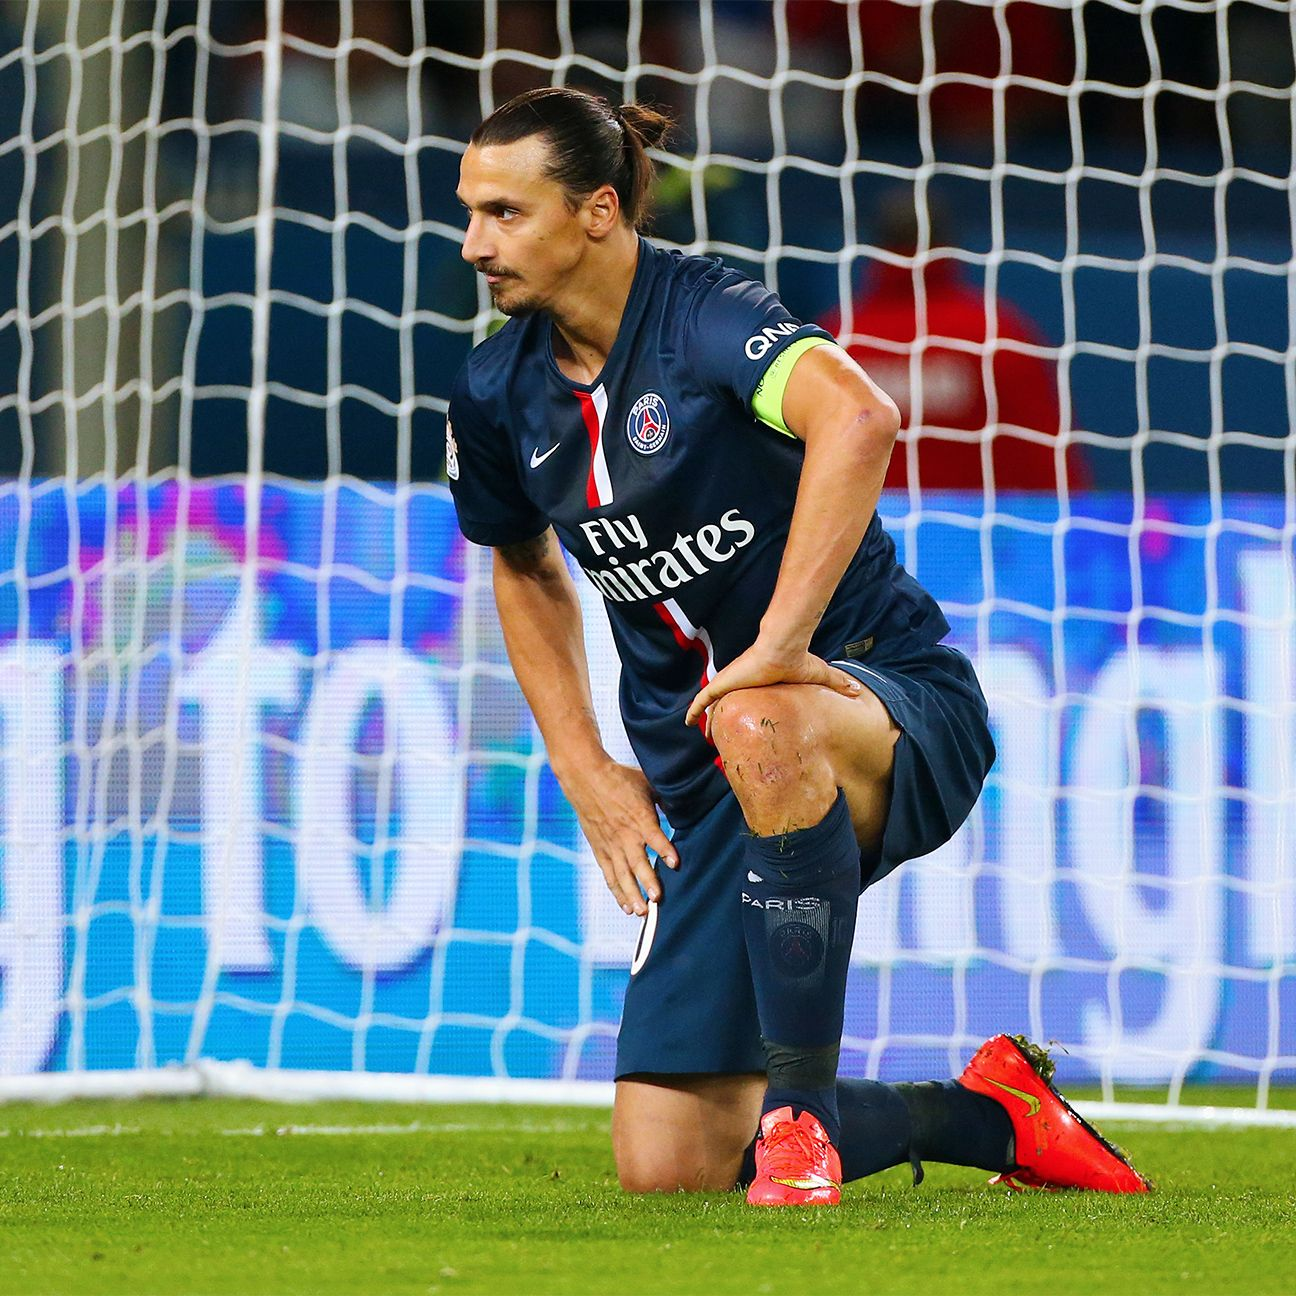 Zlatan Ibrahimovic's injuries and inconsistent form have contributed to PSG's decline this season.